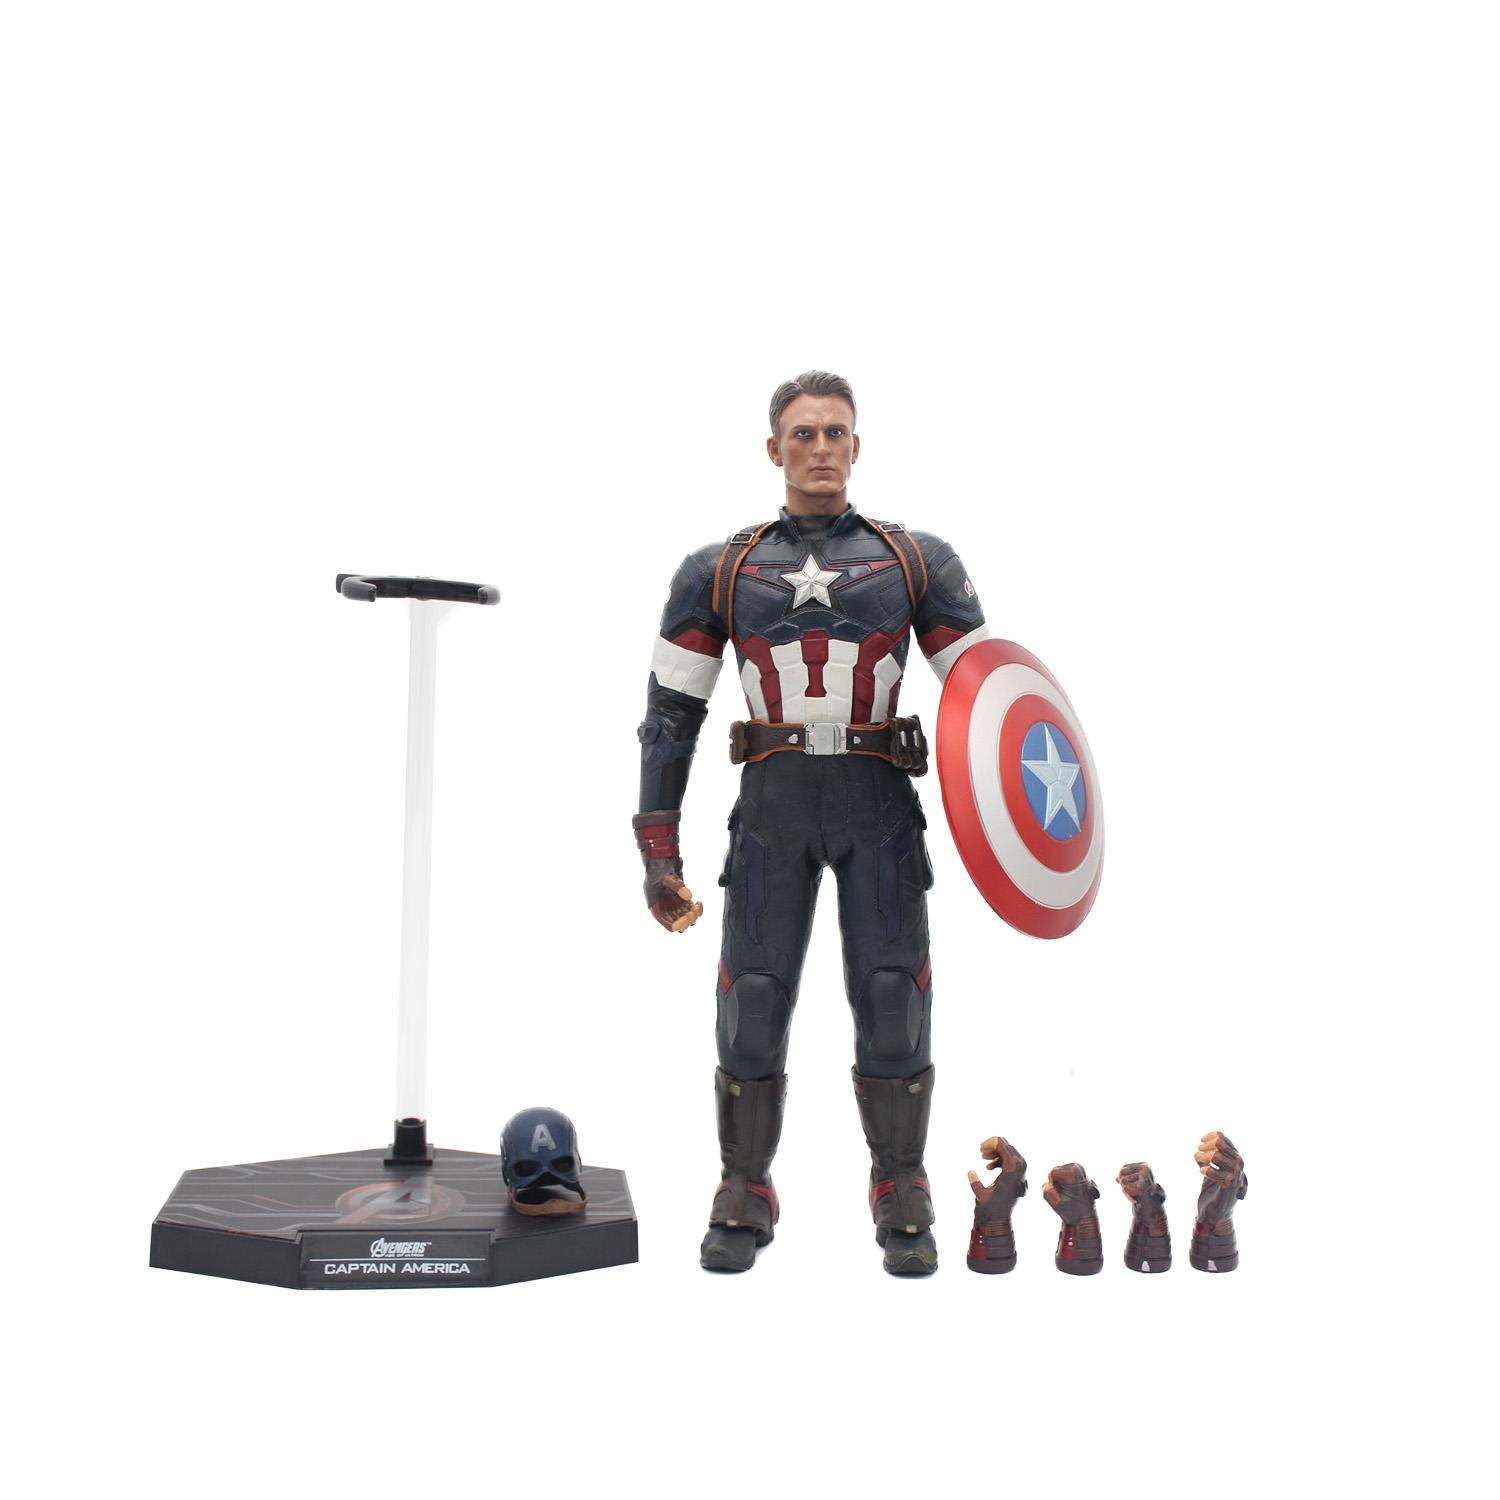 Captain America 12in 1pcs/set PVC Figures The Avenger Marvel Captain America Action Anime Figures Kids Gifts Toys captain america 12in 1pcs set pvc figures the avenger marvel captain america action anime figures kids gifts toys